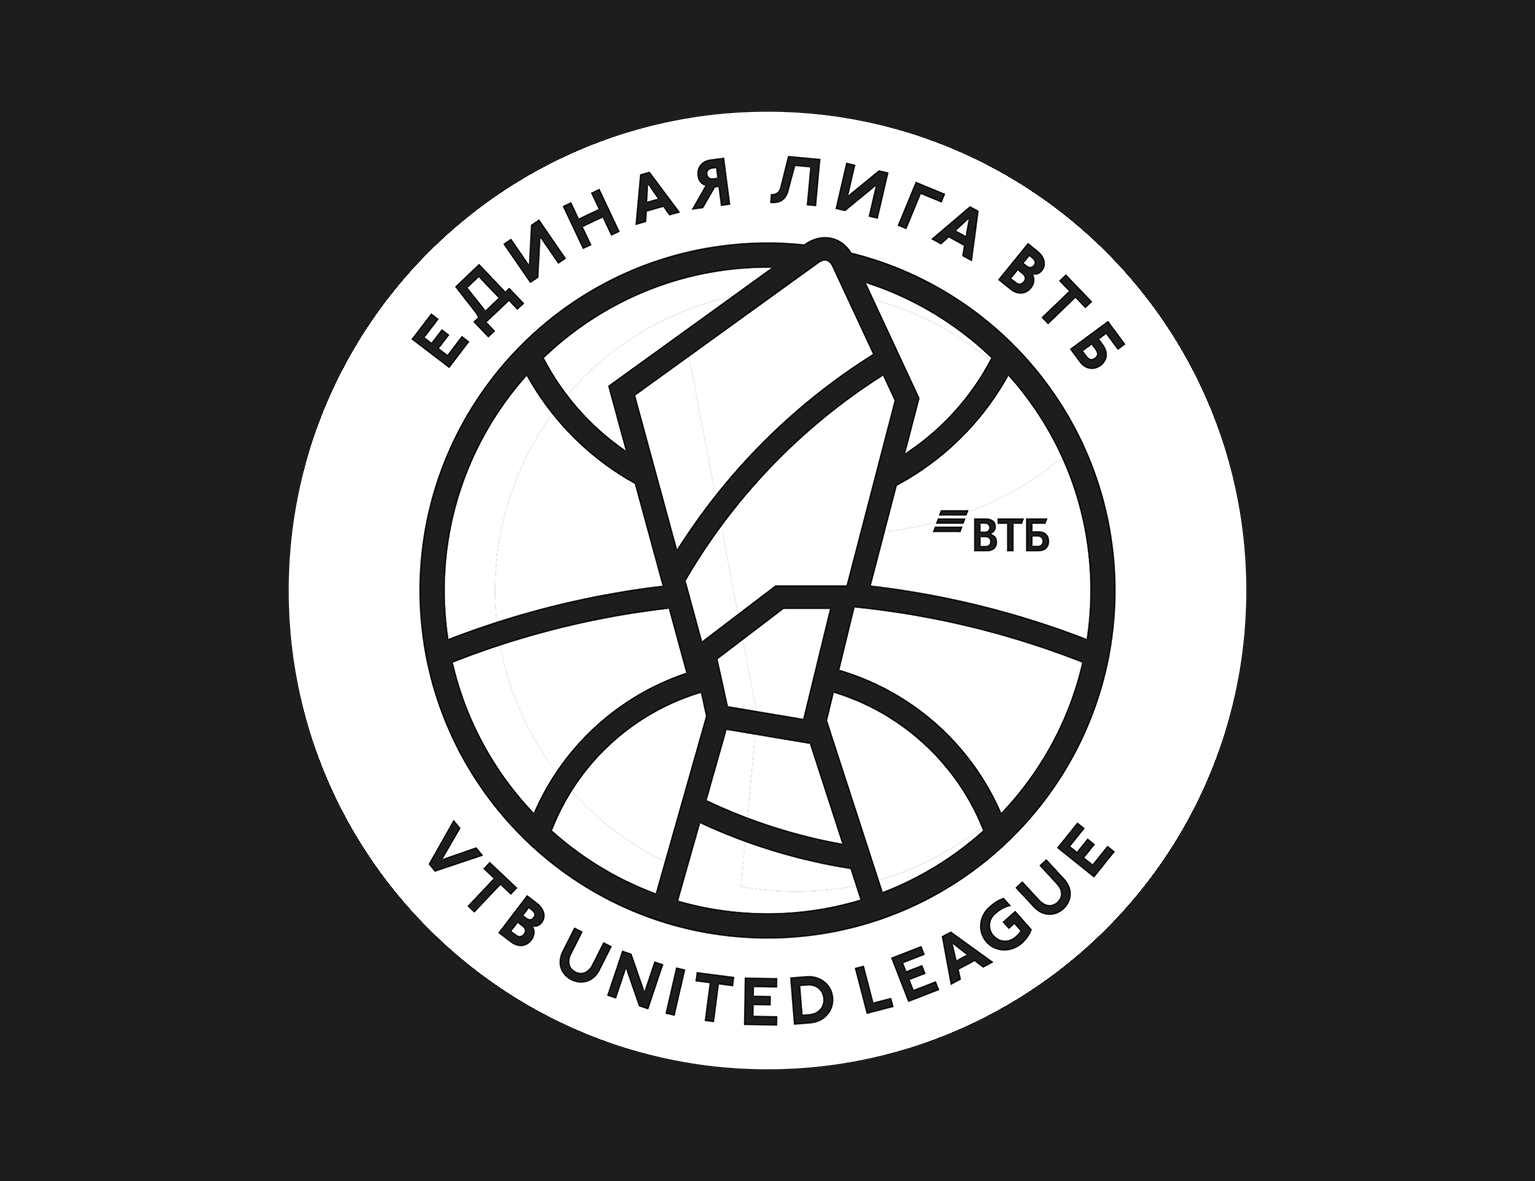 VTB United League has cancelled the remainder of 2019/20 season